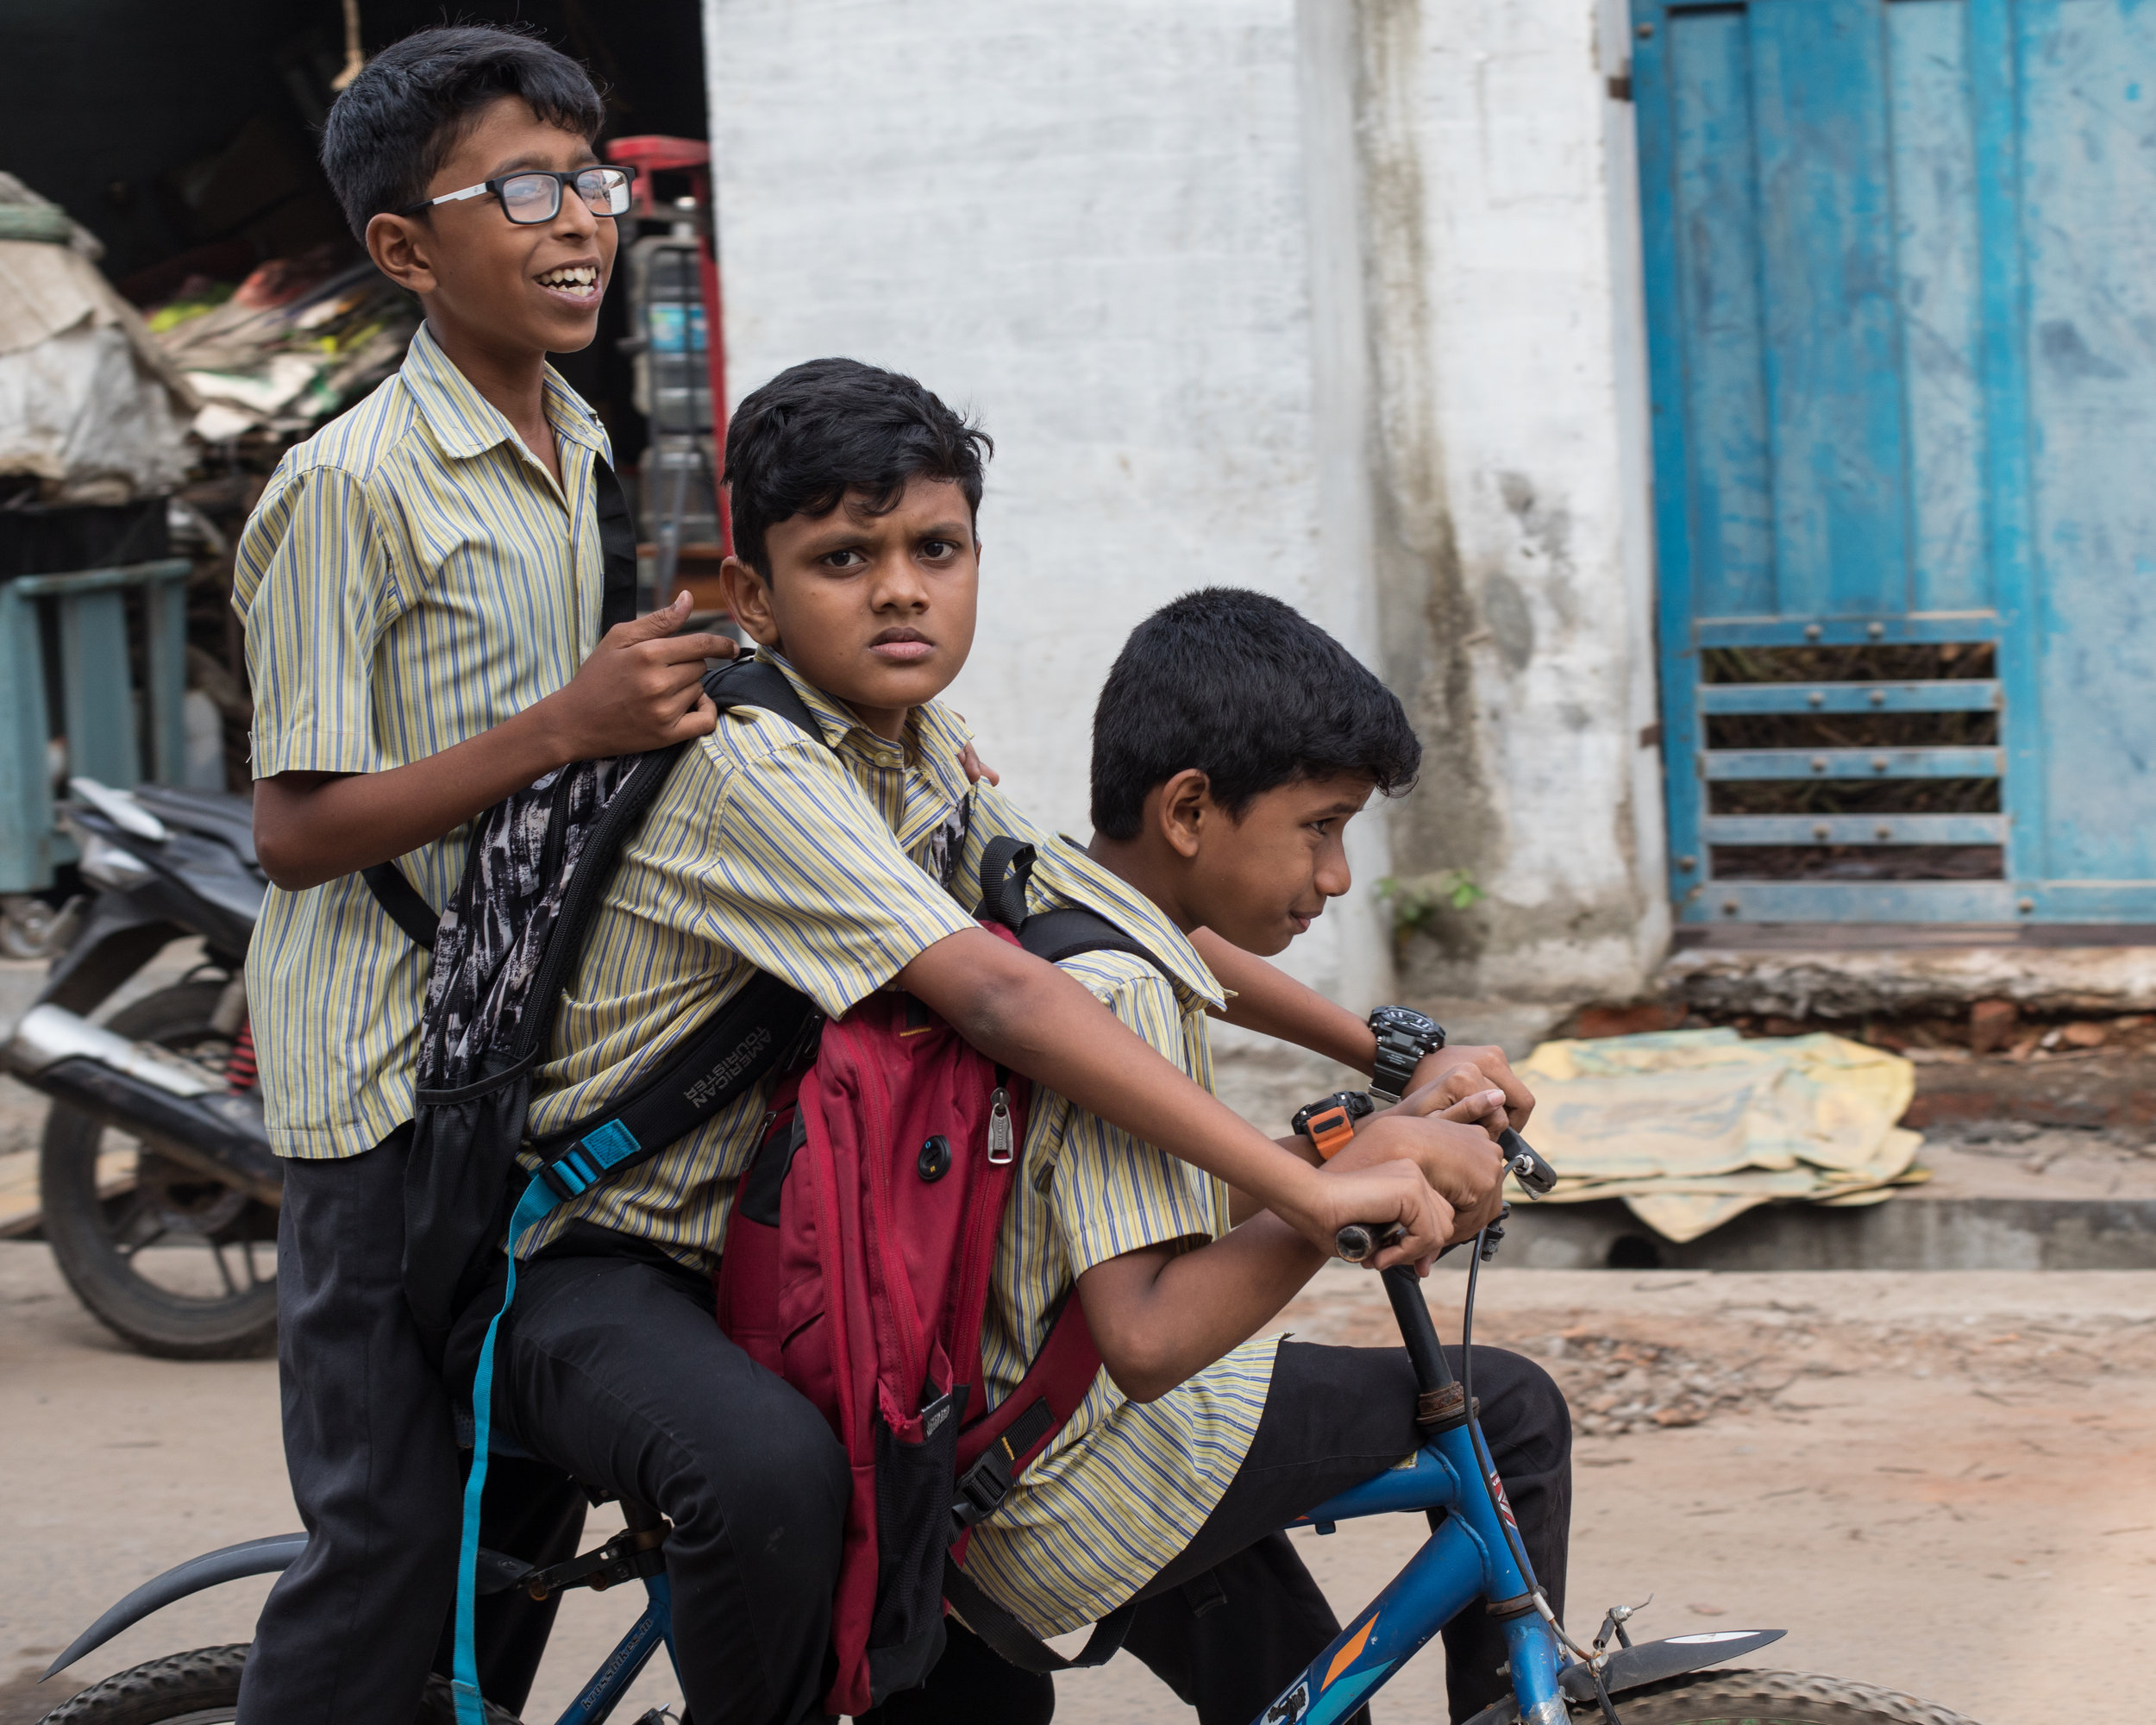 Three boys sharing a bike on the way home from School, Kerala.